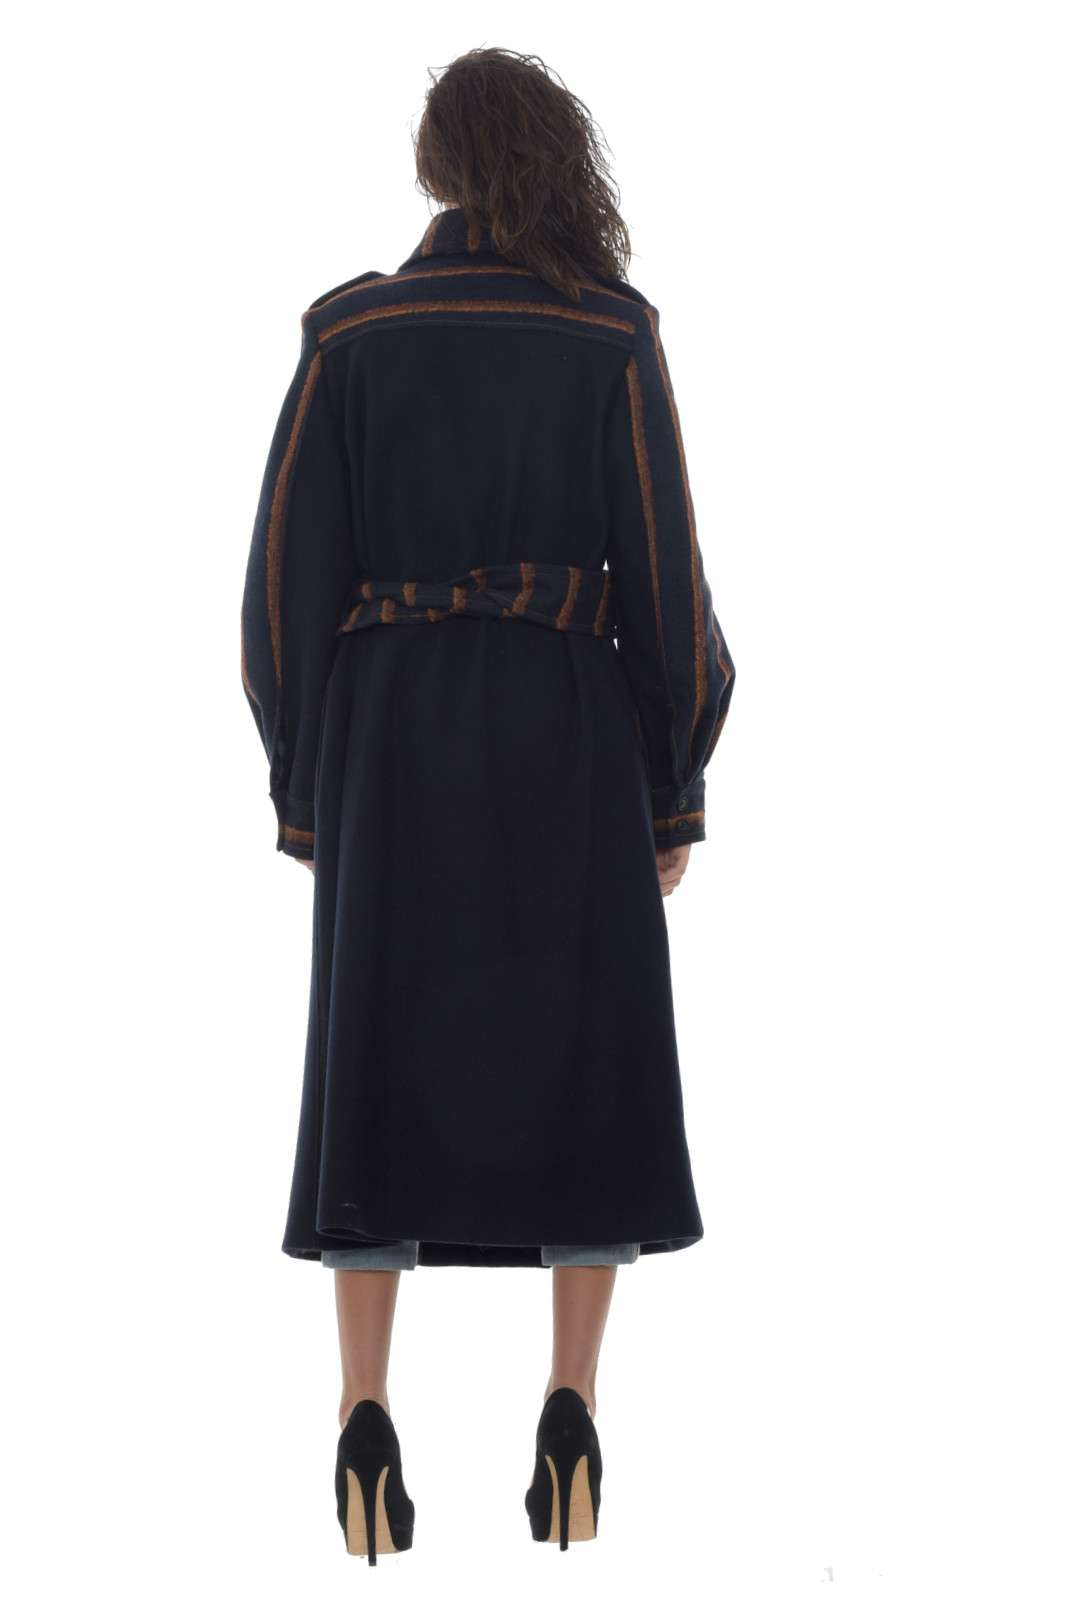 https://www.parmax.com/media/catalog/product/a/i/AI-outlet_parmax-cappotto-donna-Isola-Marras-1N9109-B_1.jpg